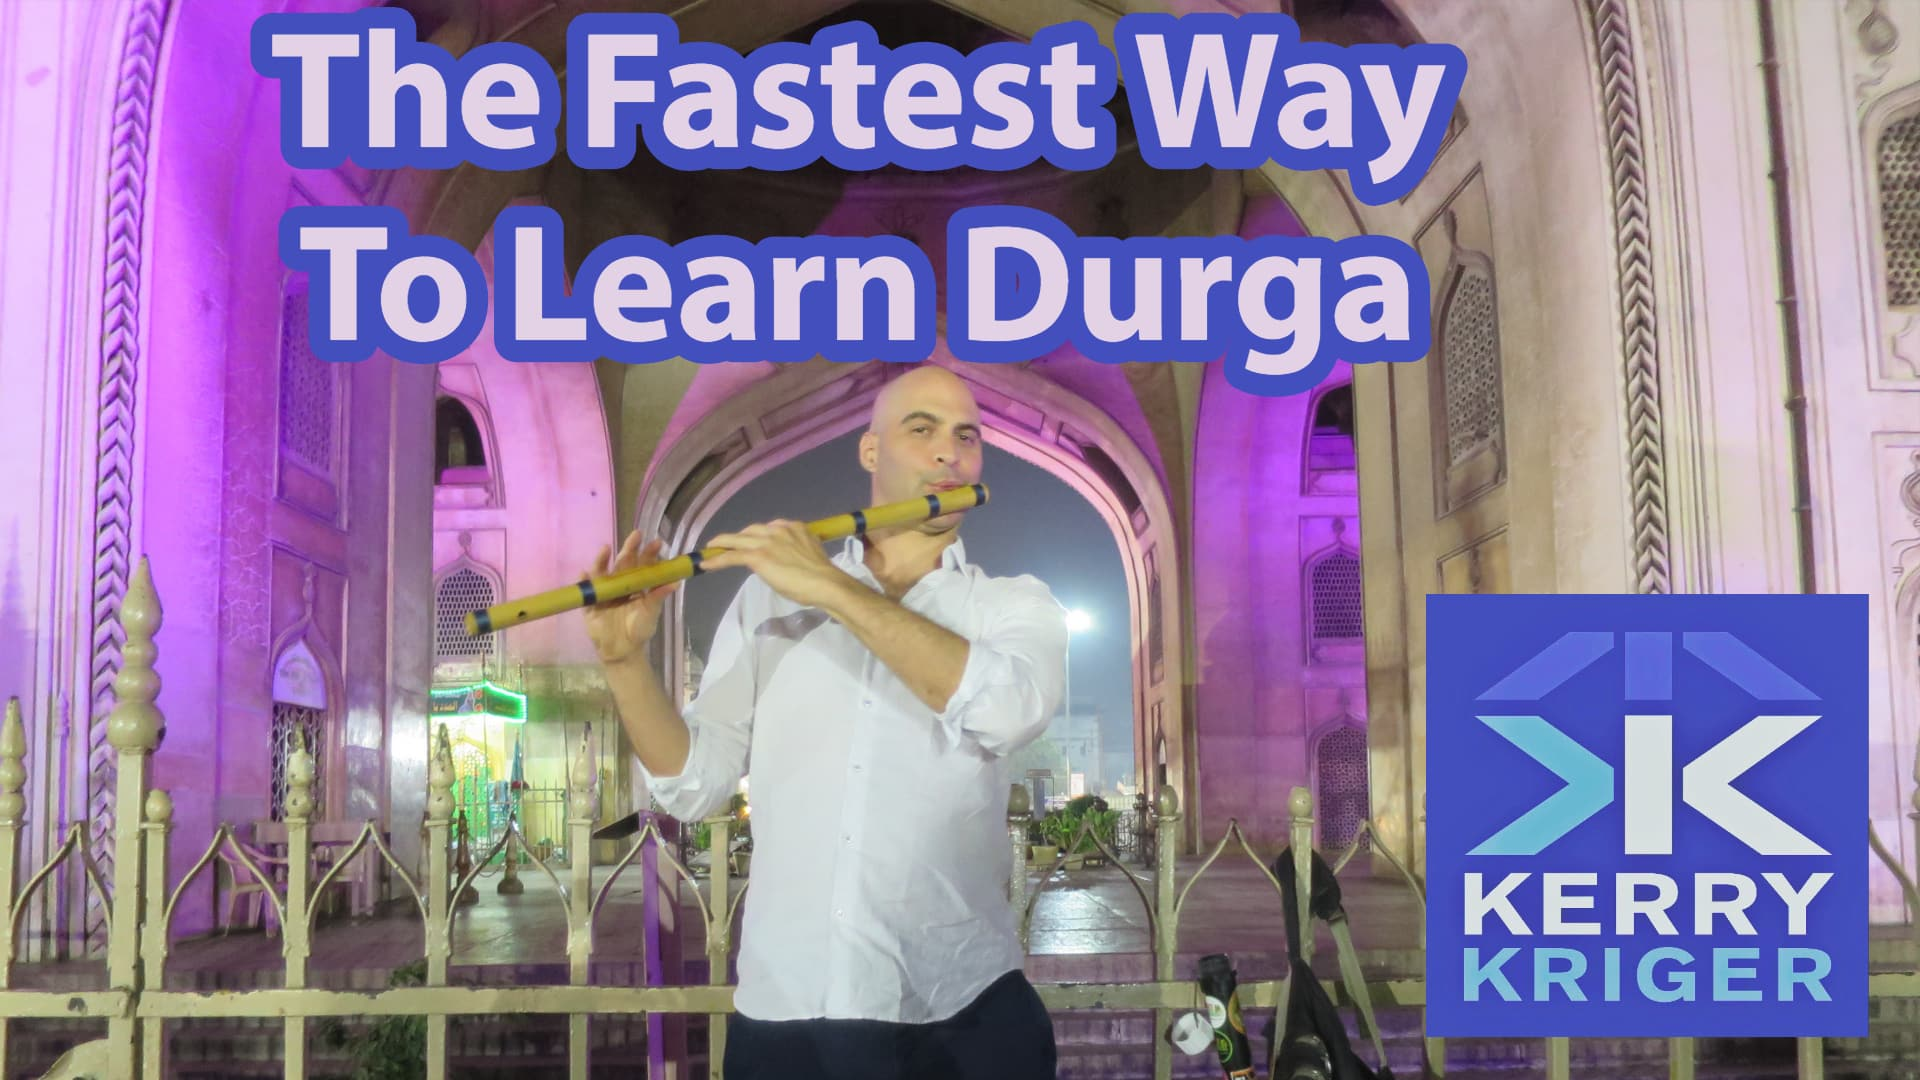 The Fastest Way To Learn Durga